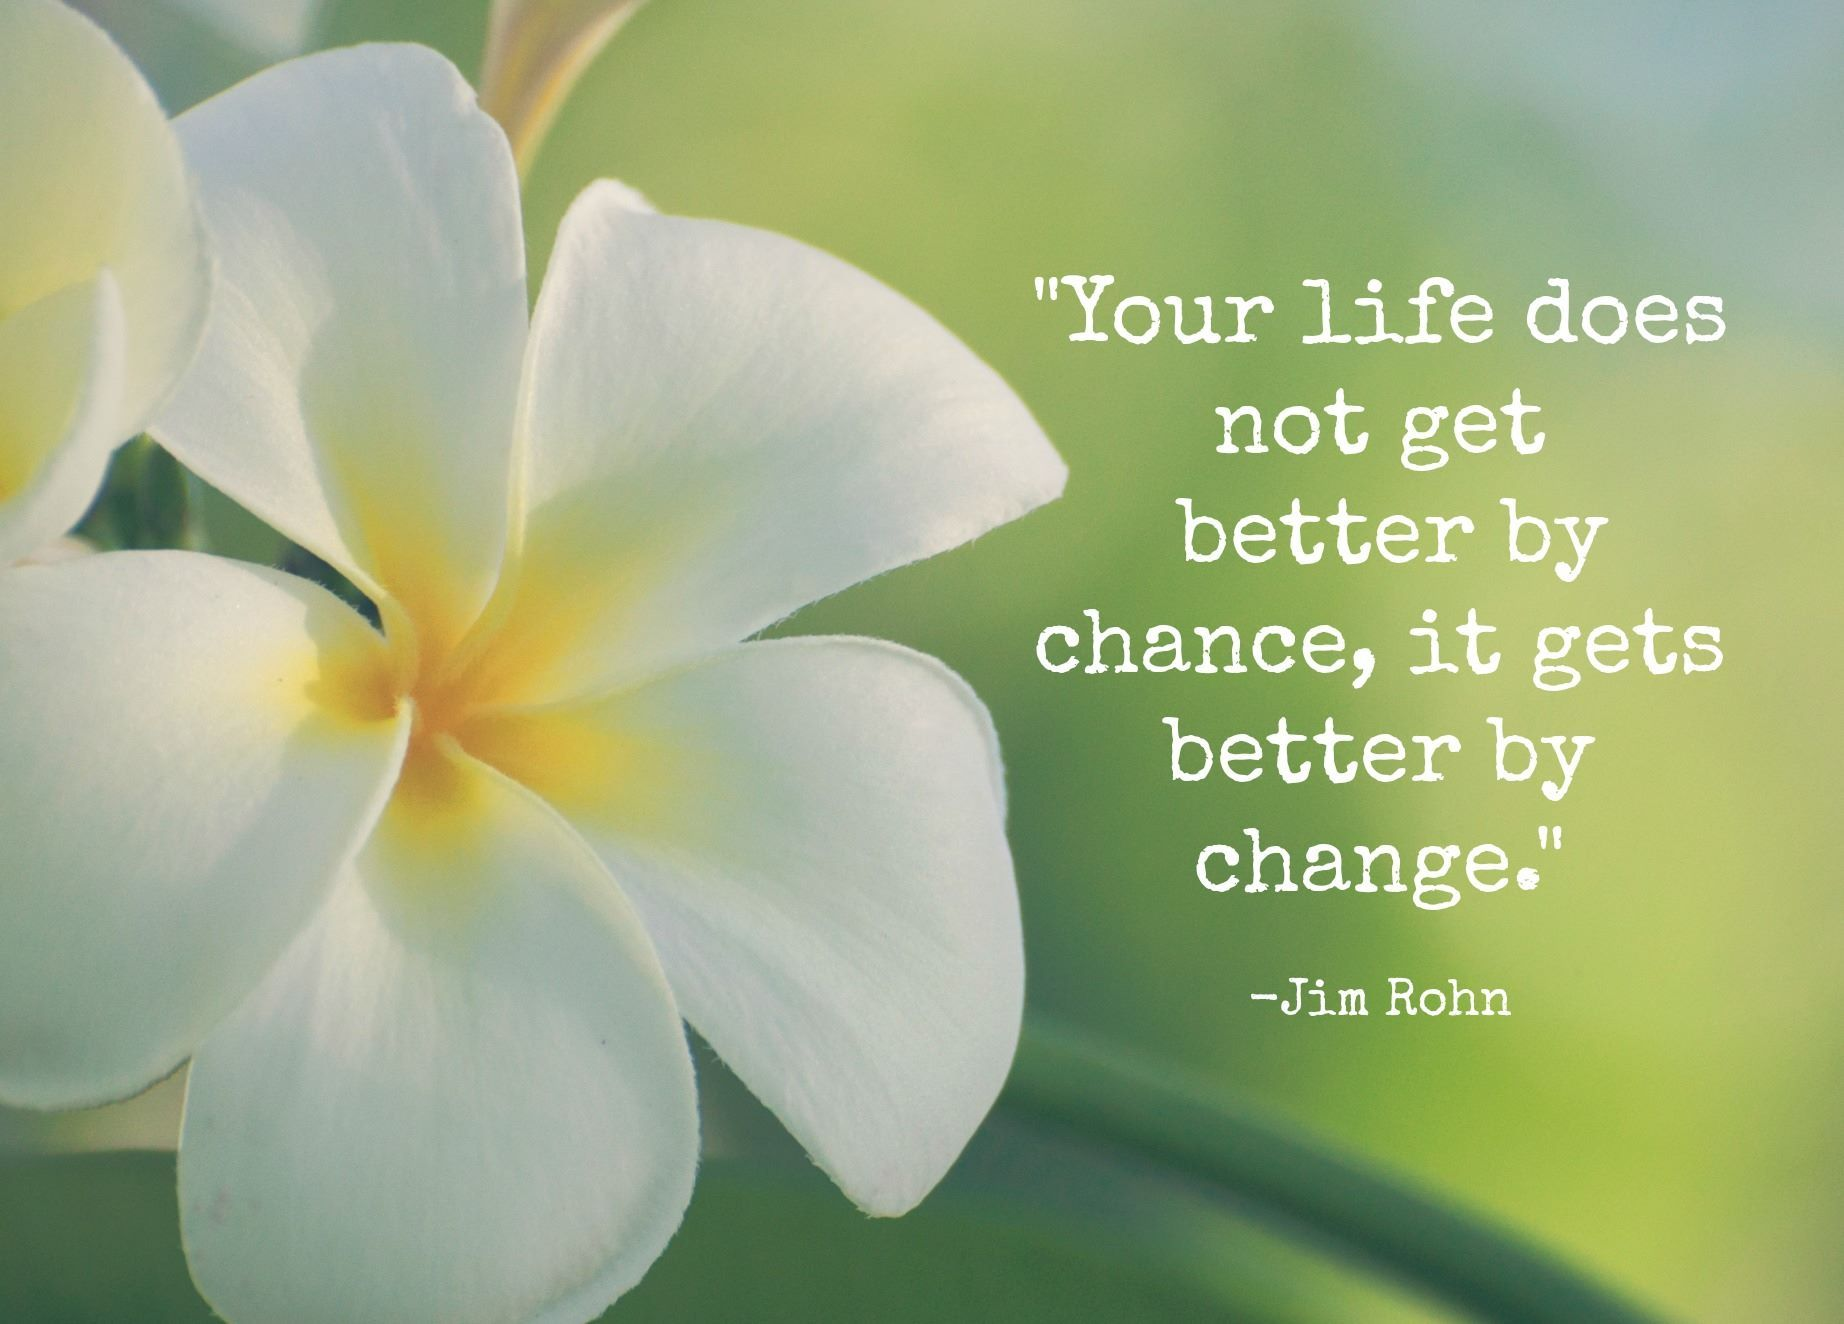 Words Of Wisdom From Jim Rohn It Gets Better Life Gets Better Housekeeping Quotes